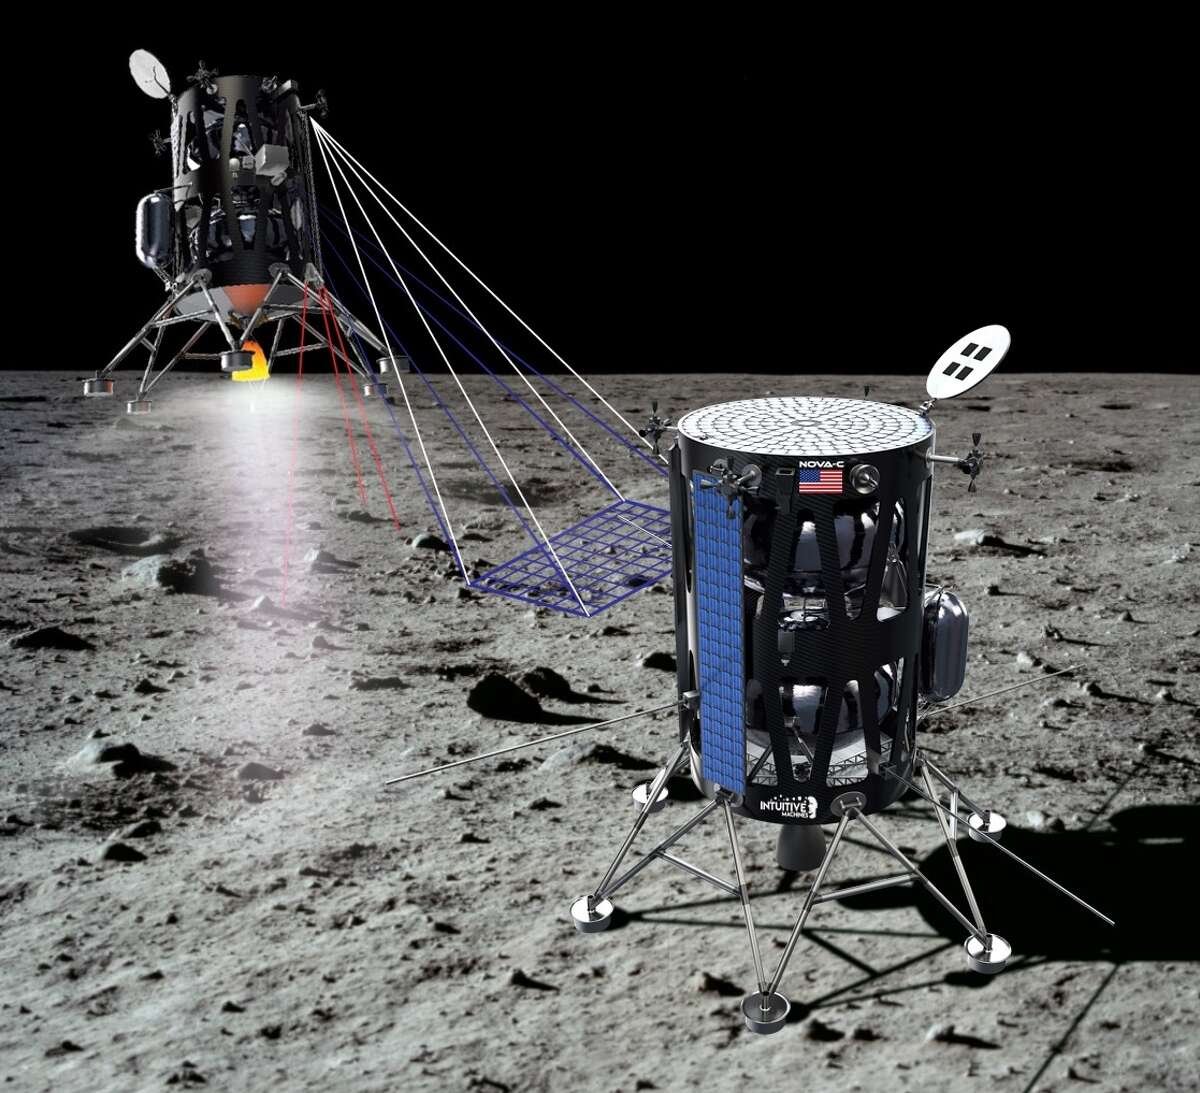 Pictured is a rendering of Intuitive Machines' lunar lander. The Houston company has proposed to fly as many as five payloads to a scientifically intriguing dark spot on the Moon.